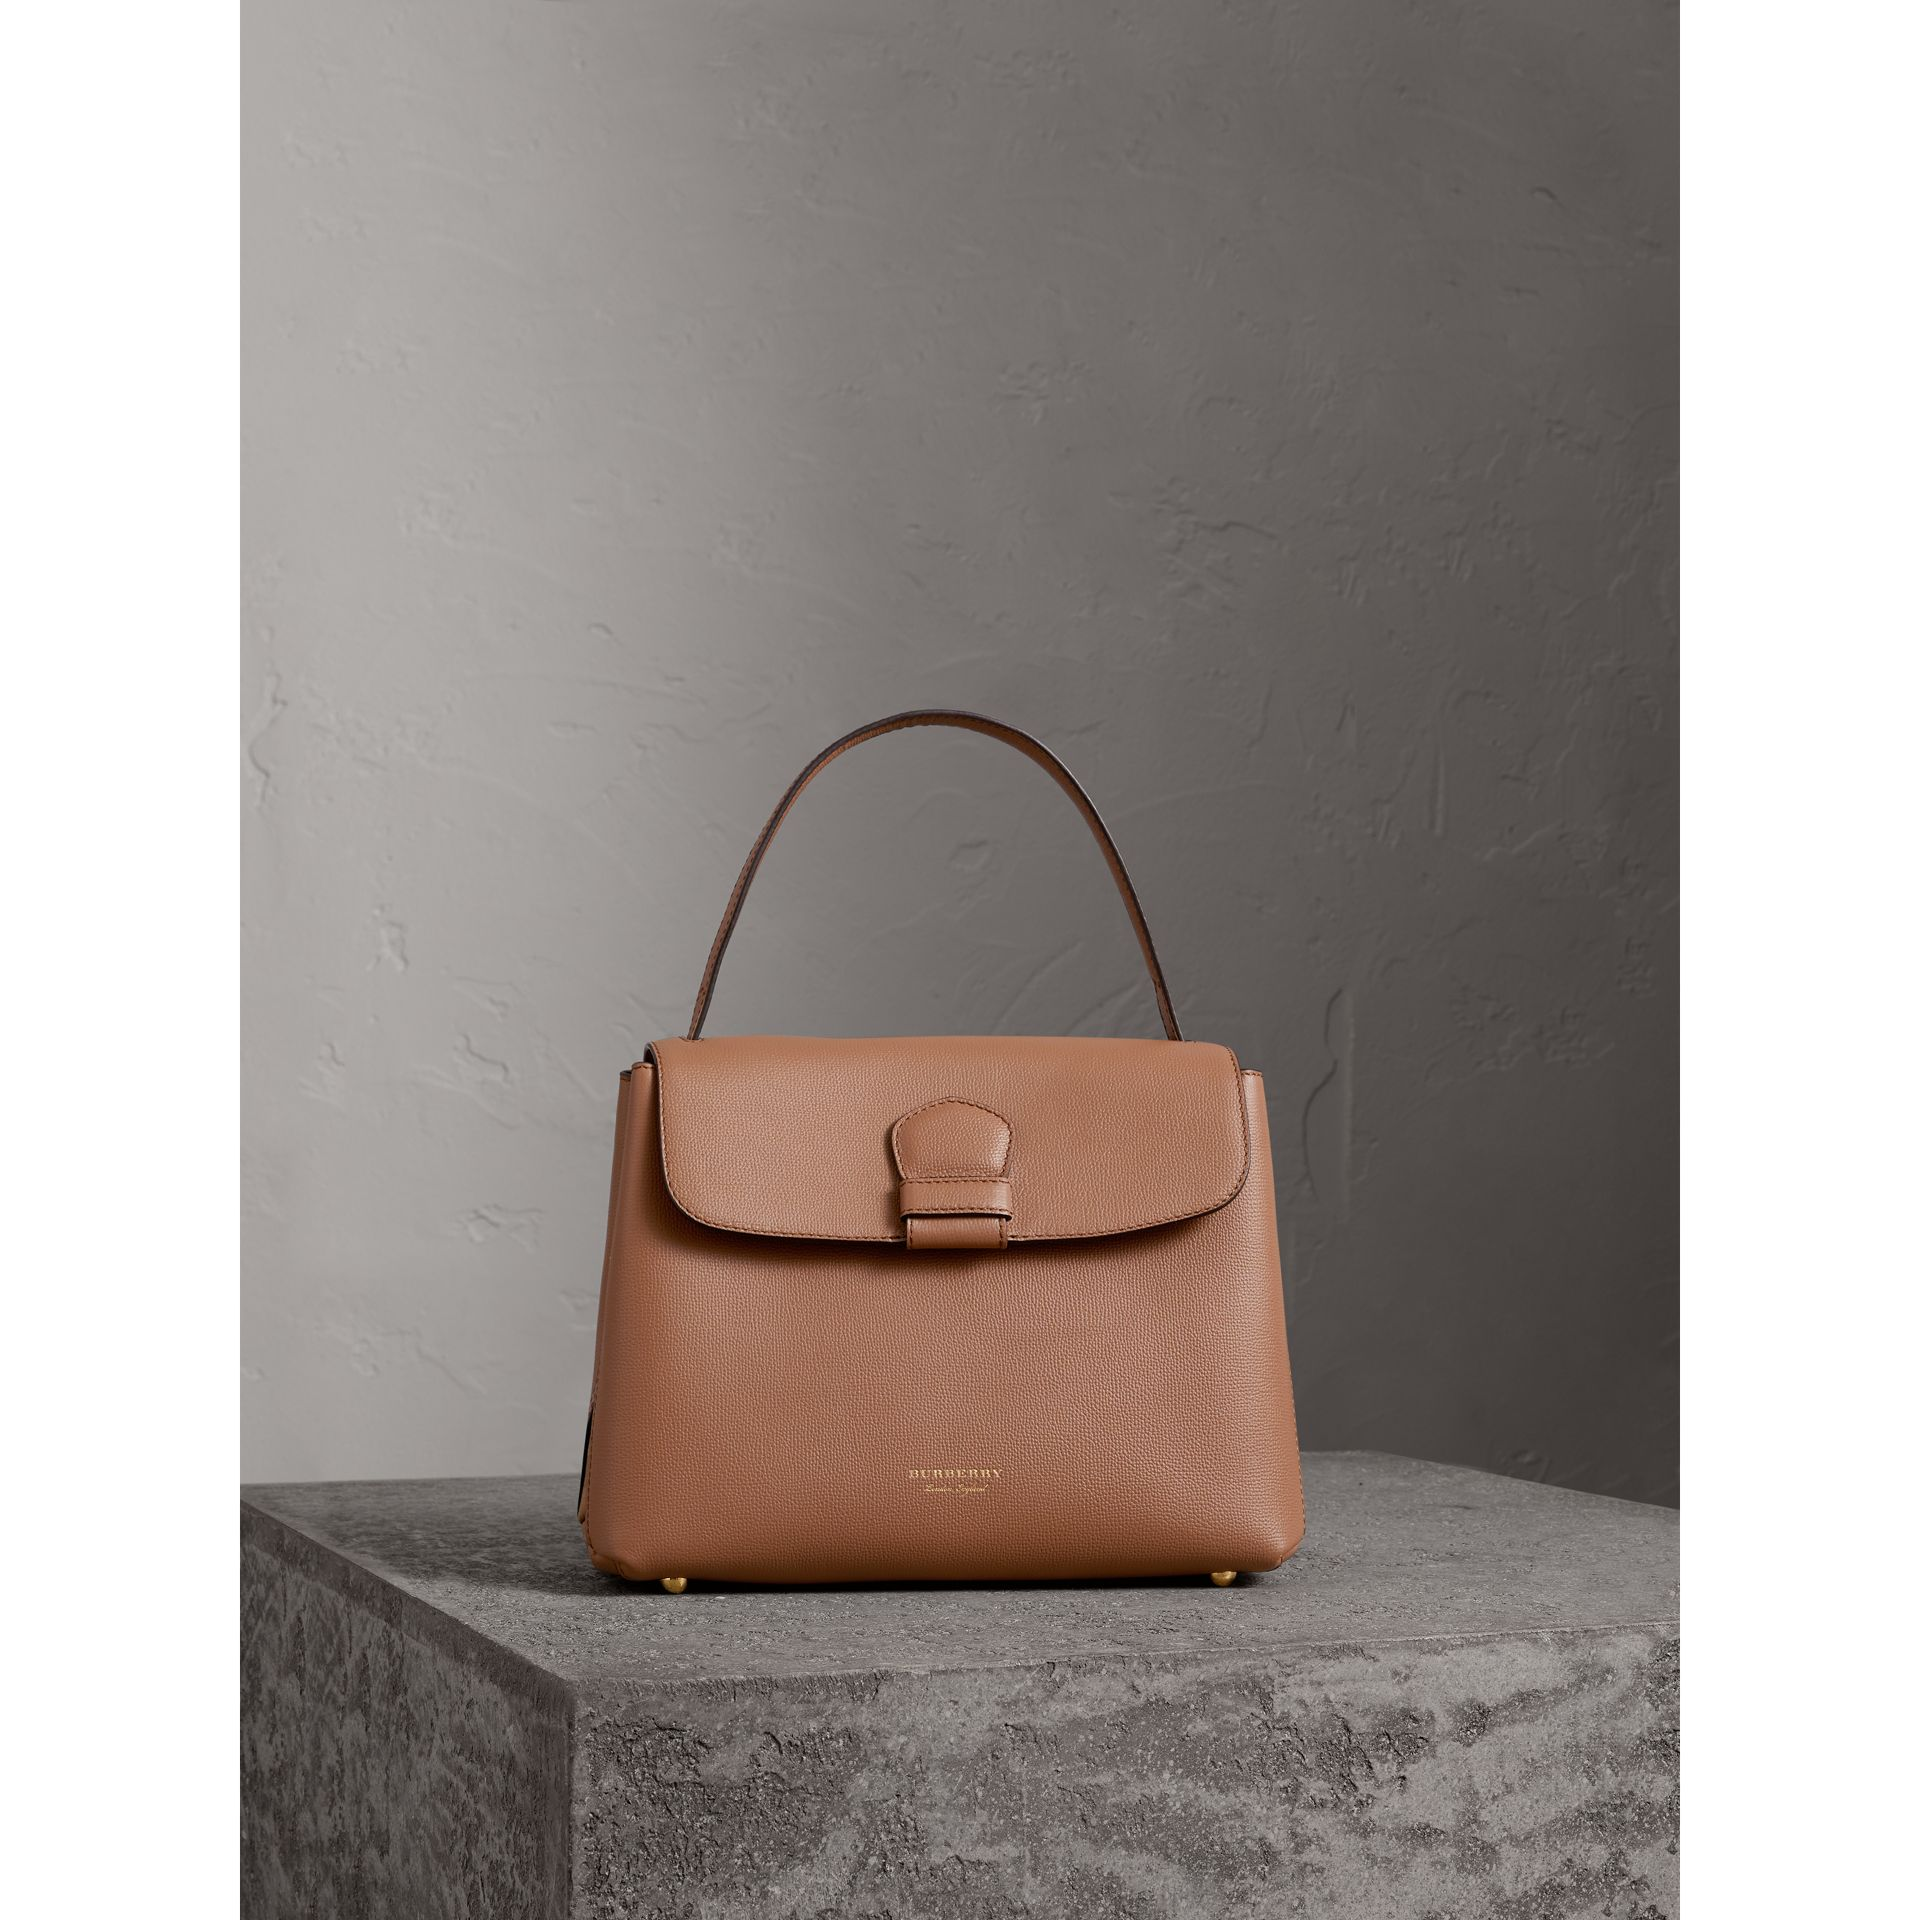 Medium Grainy Leather and House Check Tote Bag in Dark Sand - Women | Burberry Singapore - gallery image 6